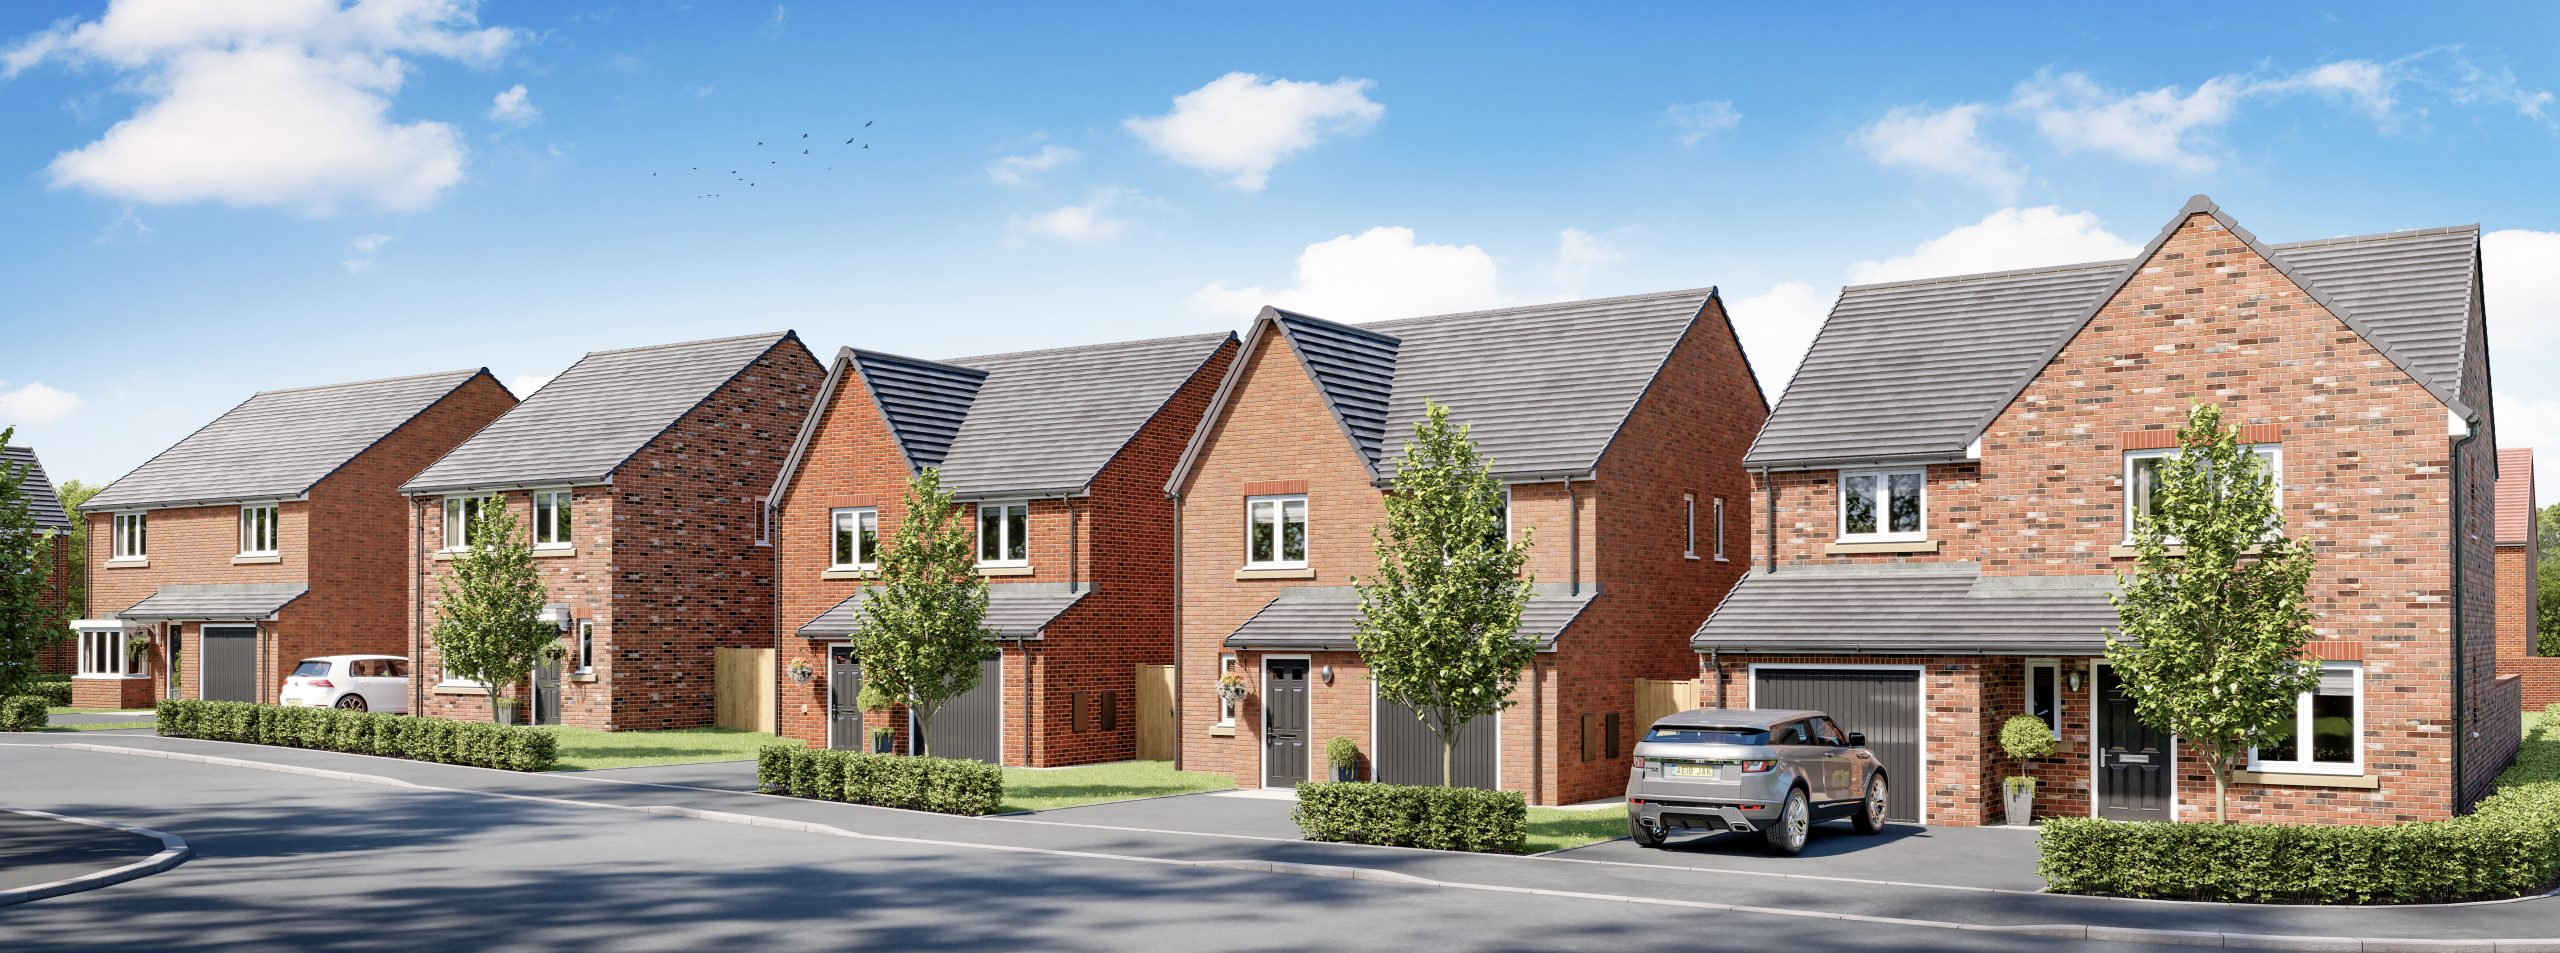 Housebuilder to Deliver New Homes in Lancashire